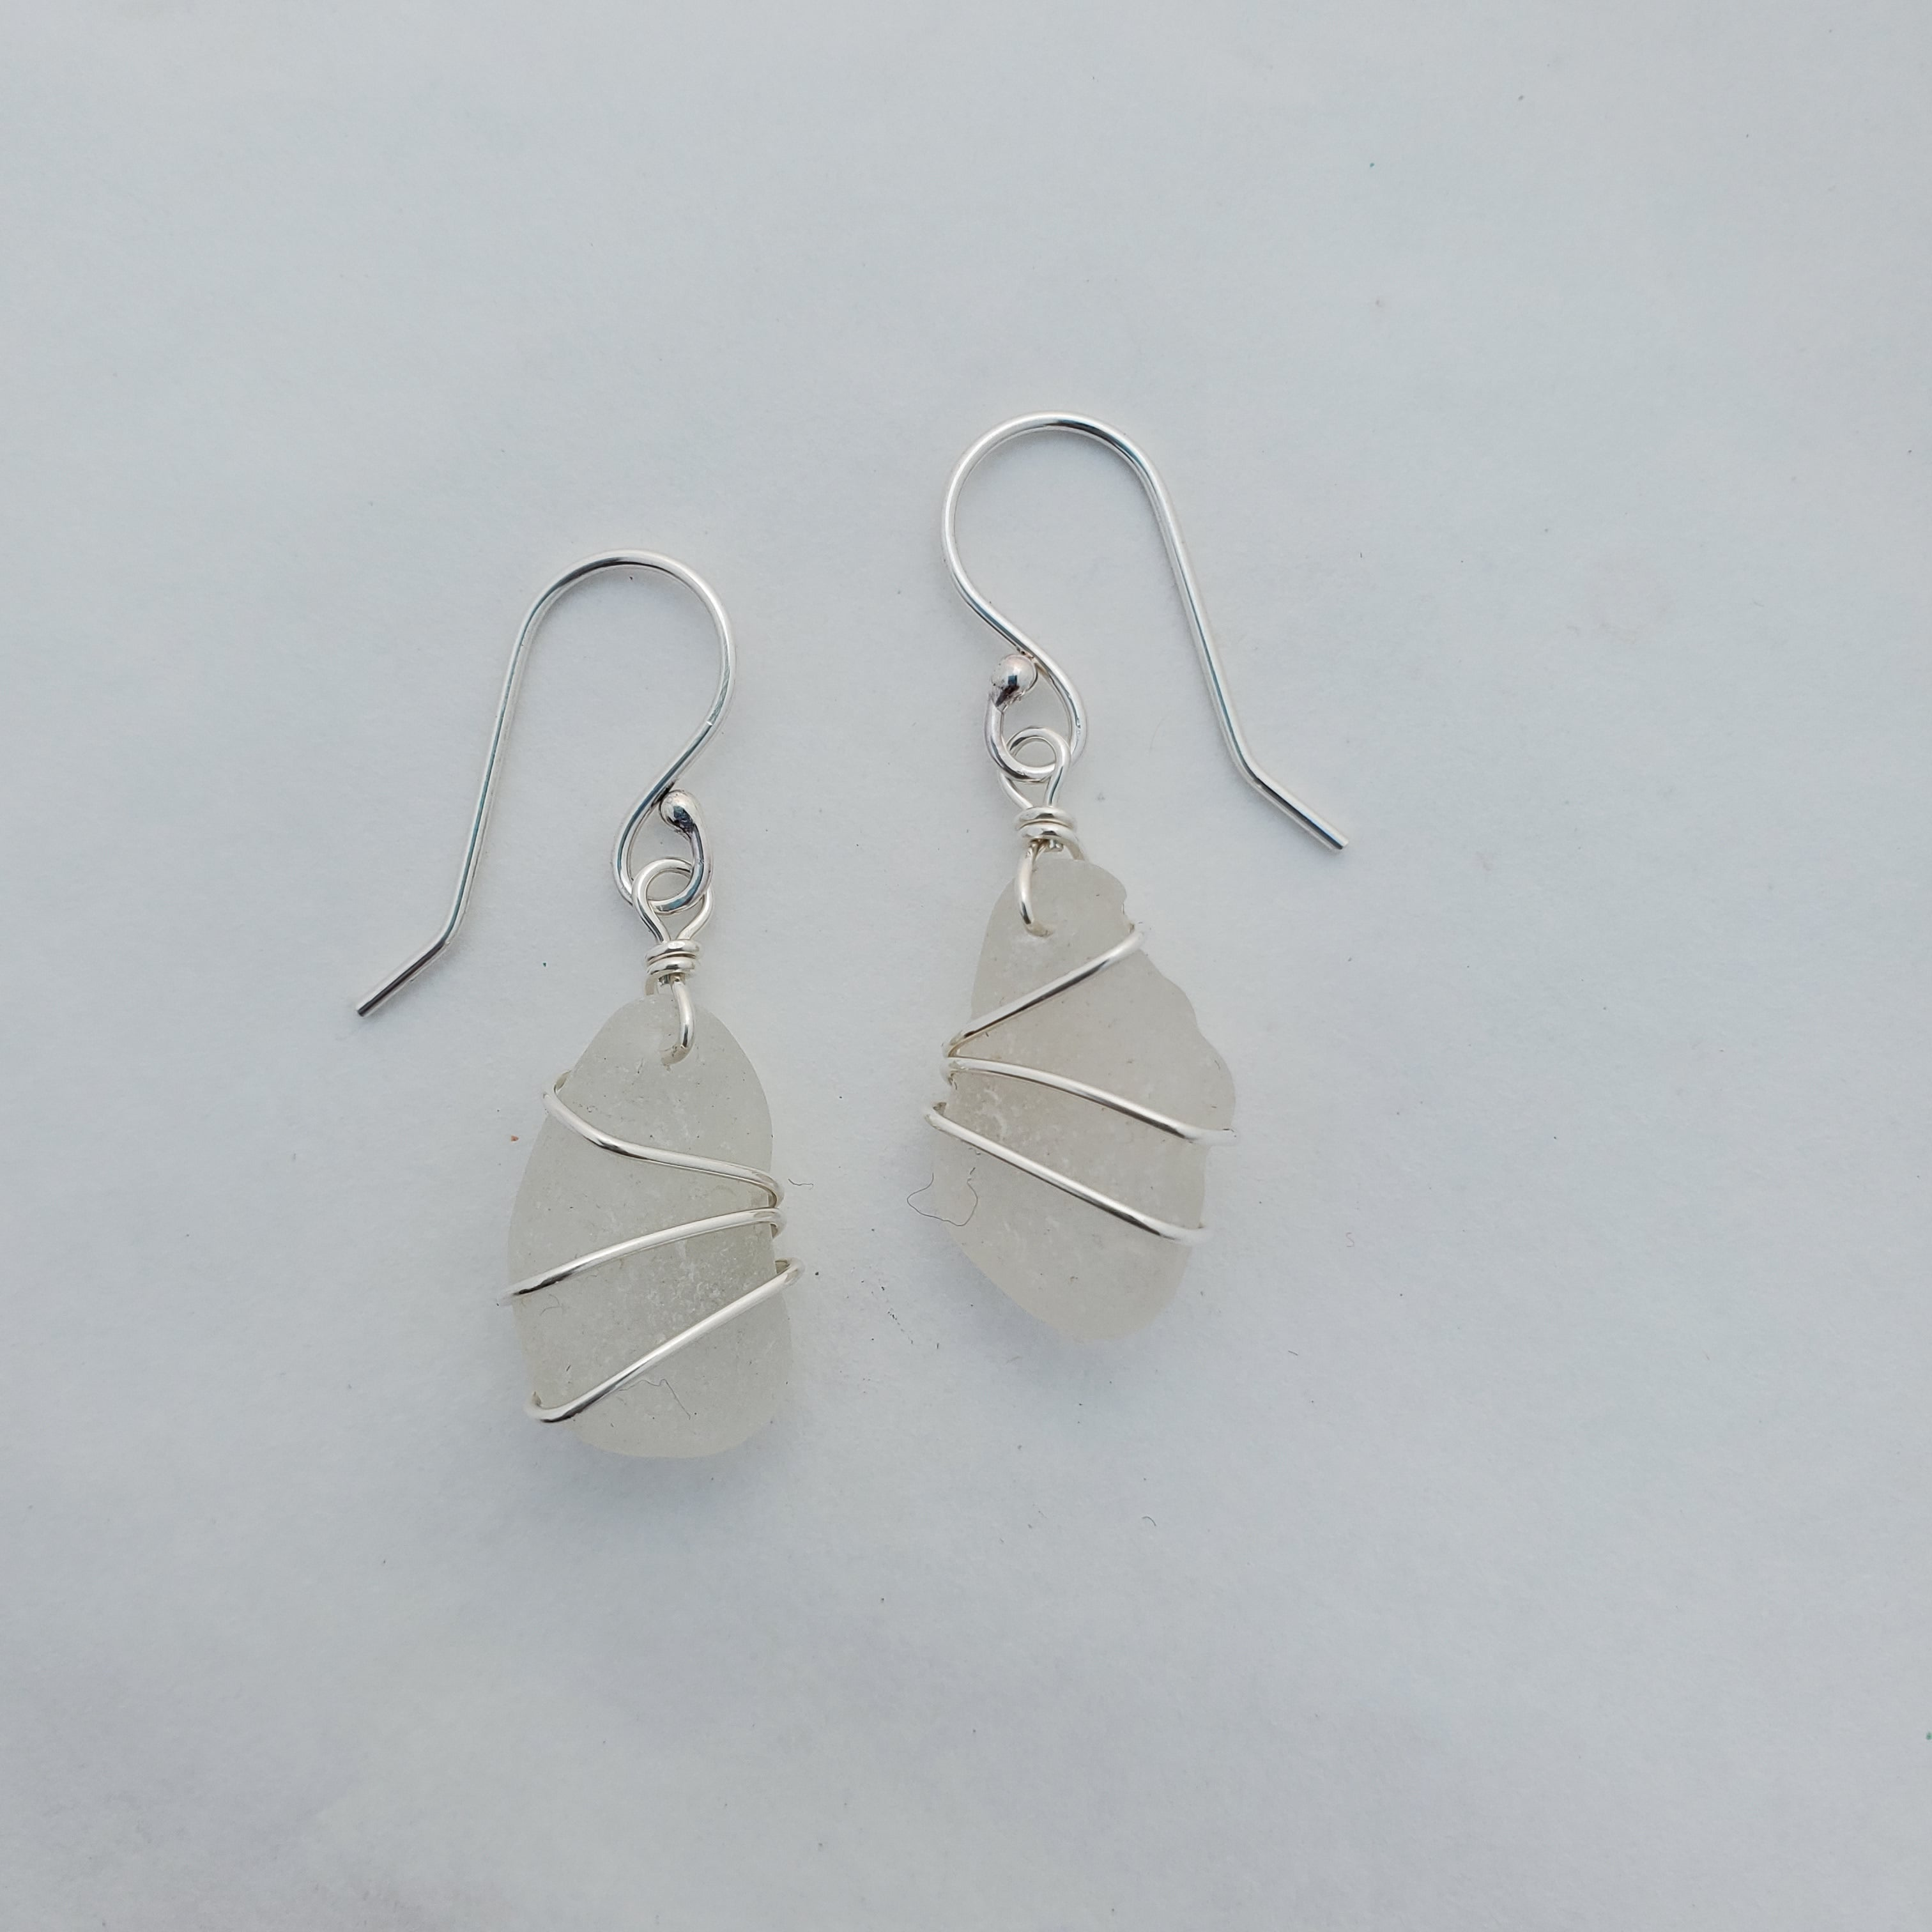 White sea glass earrings wire wrapped in sterling silver with french earring wires on white background